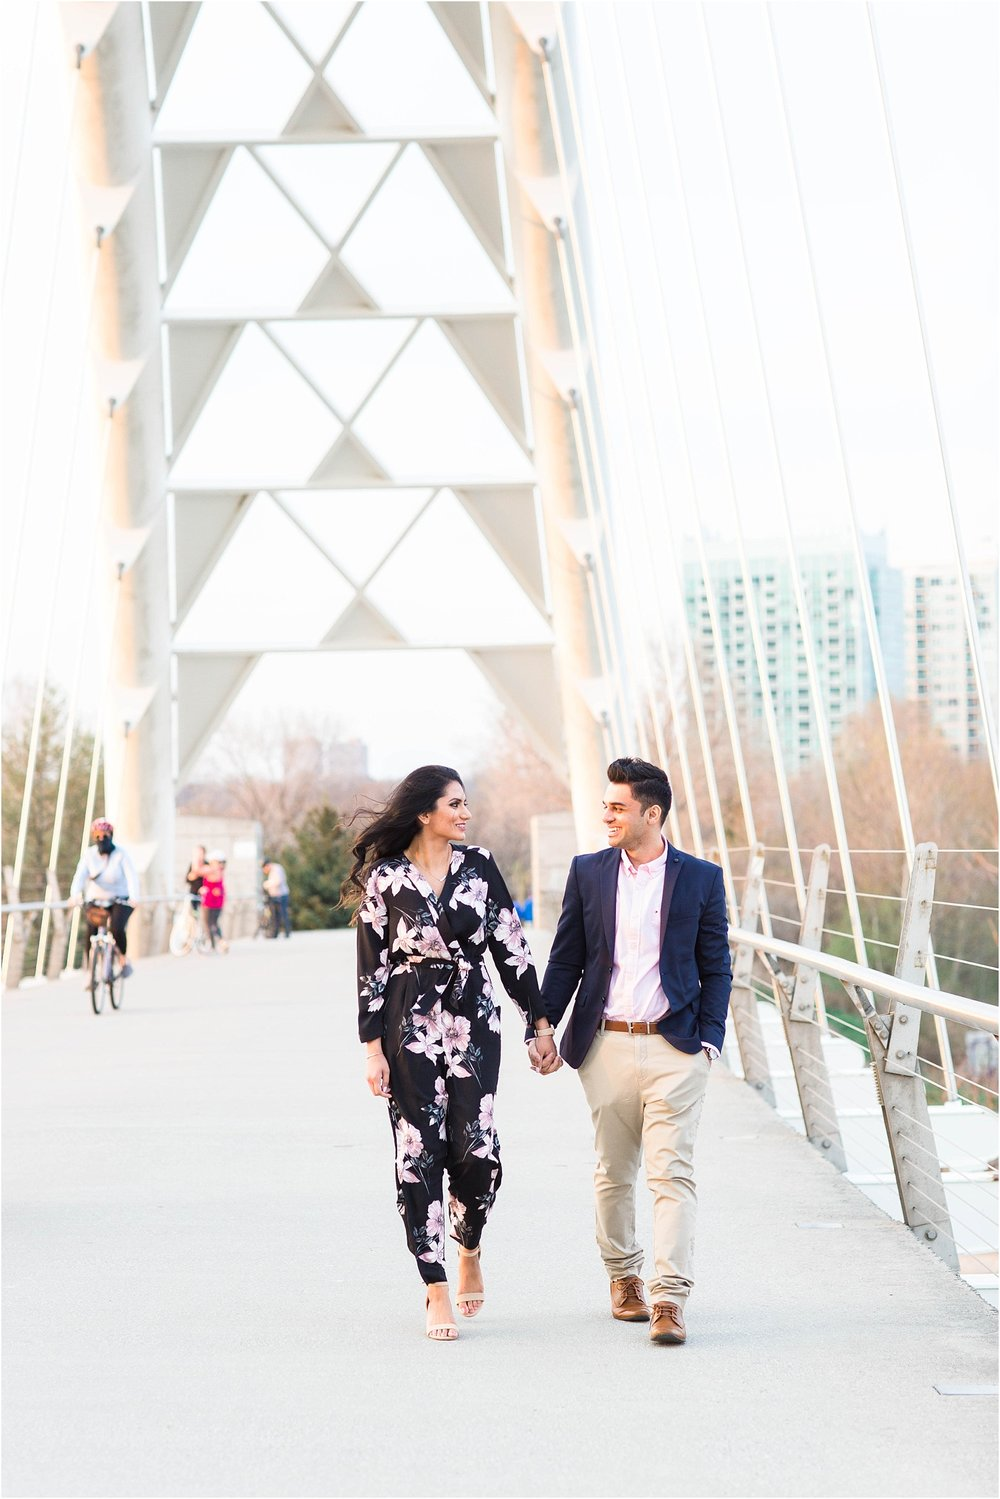 Ryerson-University-Humber-Bay-Bridge-Engagement-Session-Toronto-Mississauga-Brampton-Scarborough-GTA-Pakistani-Indian-Wedding-Engagement-Photographer-Photography_0024.jpg